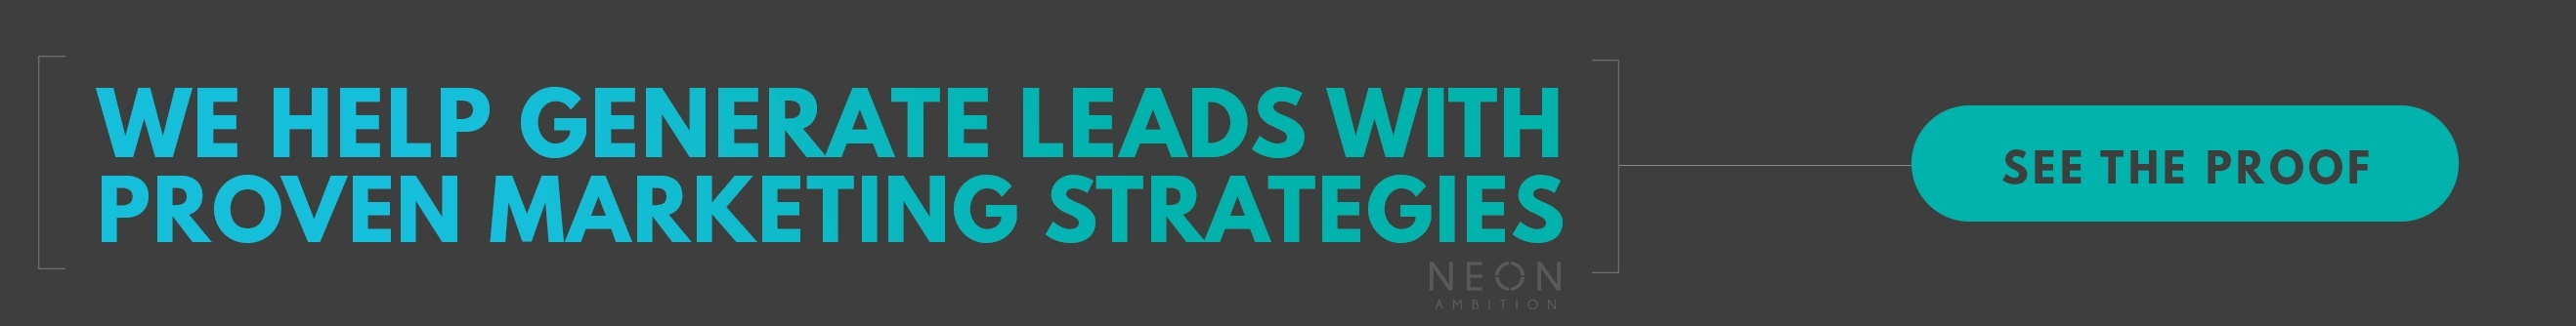 We help generate leads with proven marketing strategies- View the Neon Ambition Case Studies